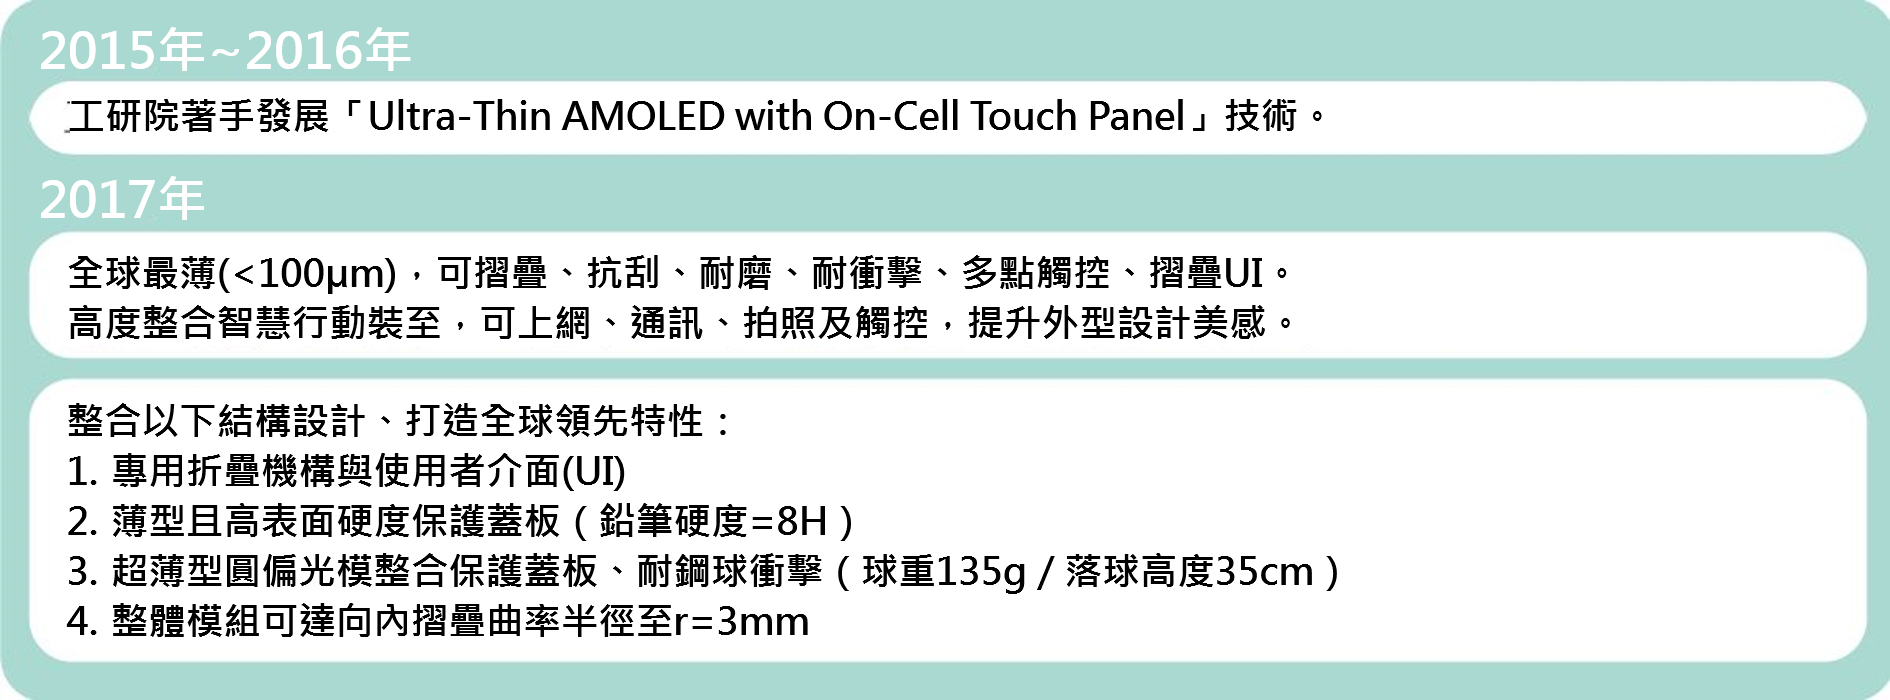 Foldable Touch AMOLED技術發展過程